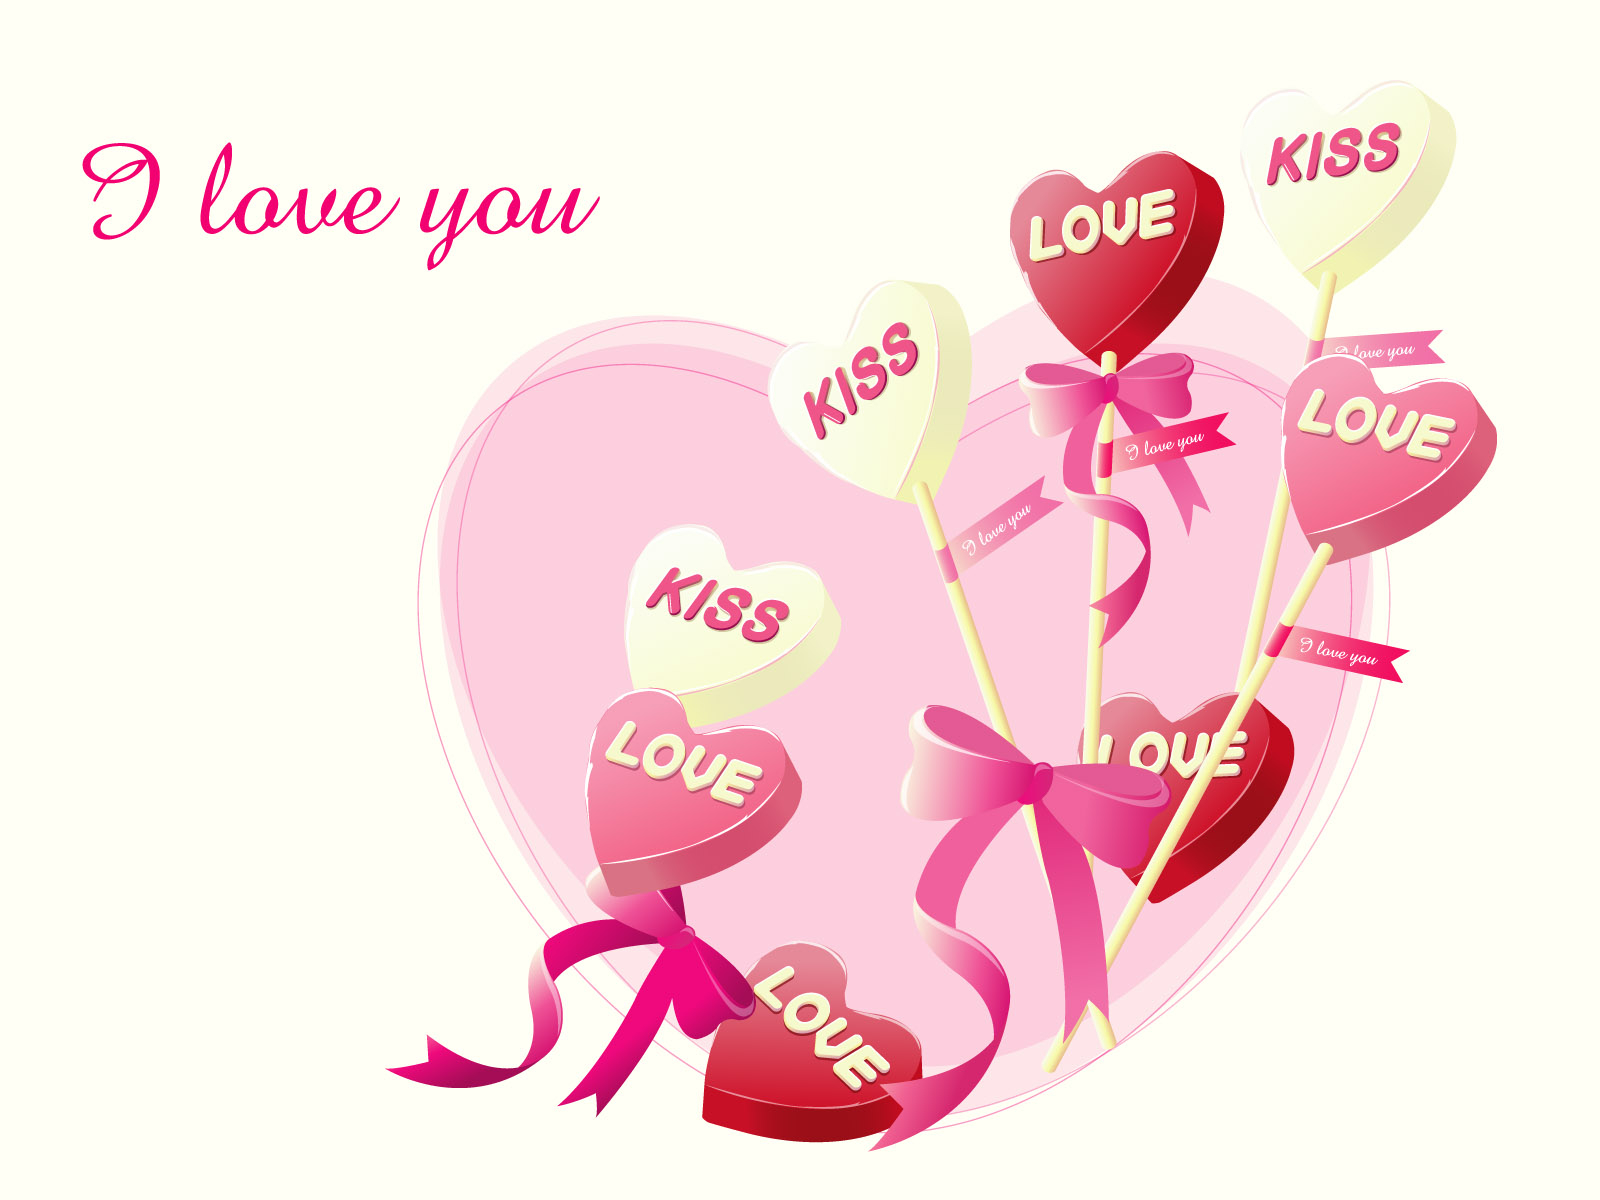 i love you wallpaper,heart,love,text,valentine's day,pink